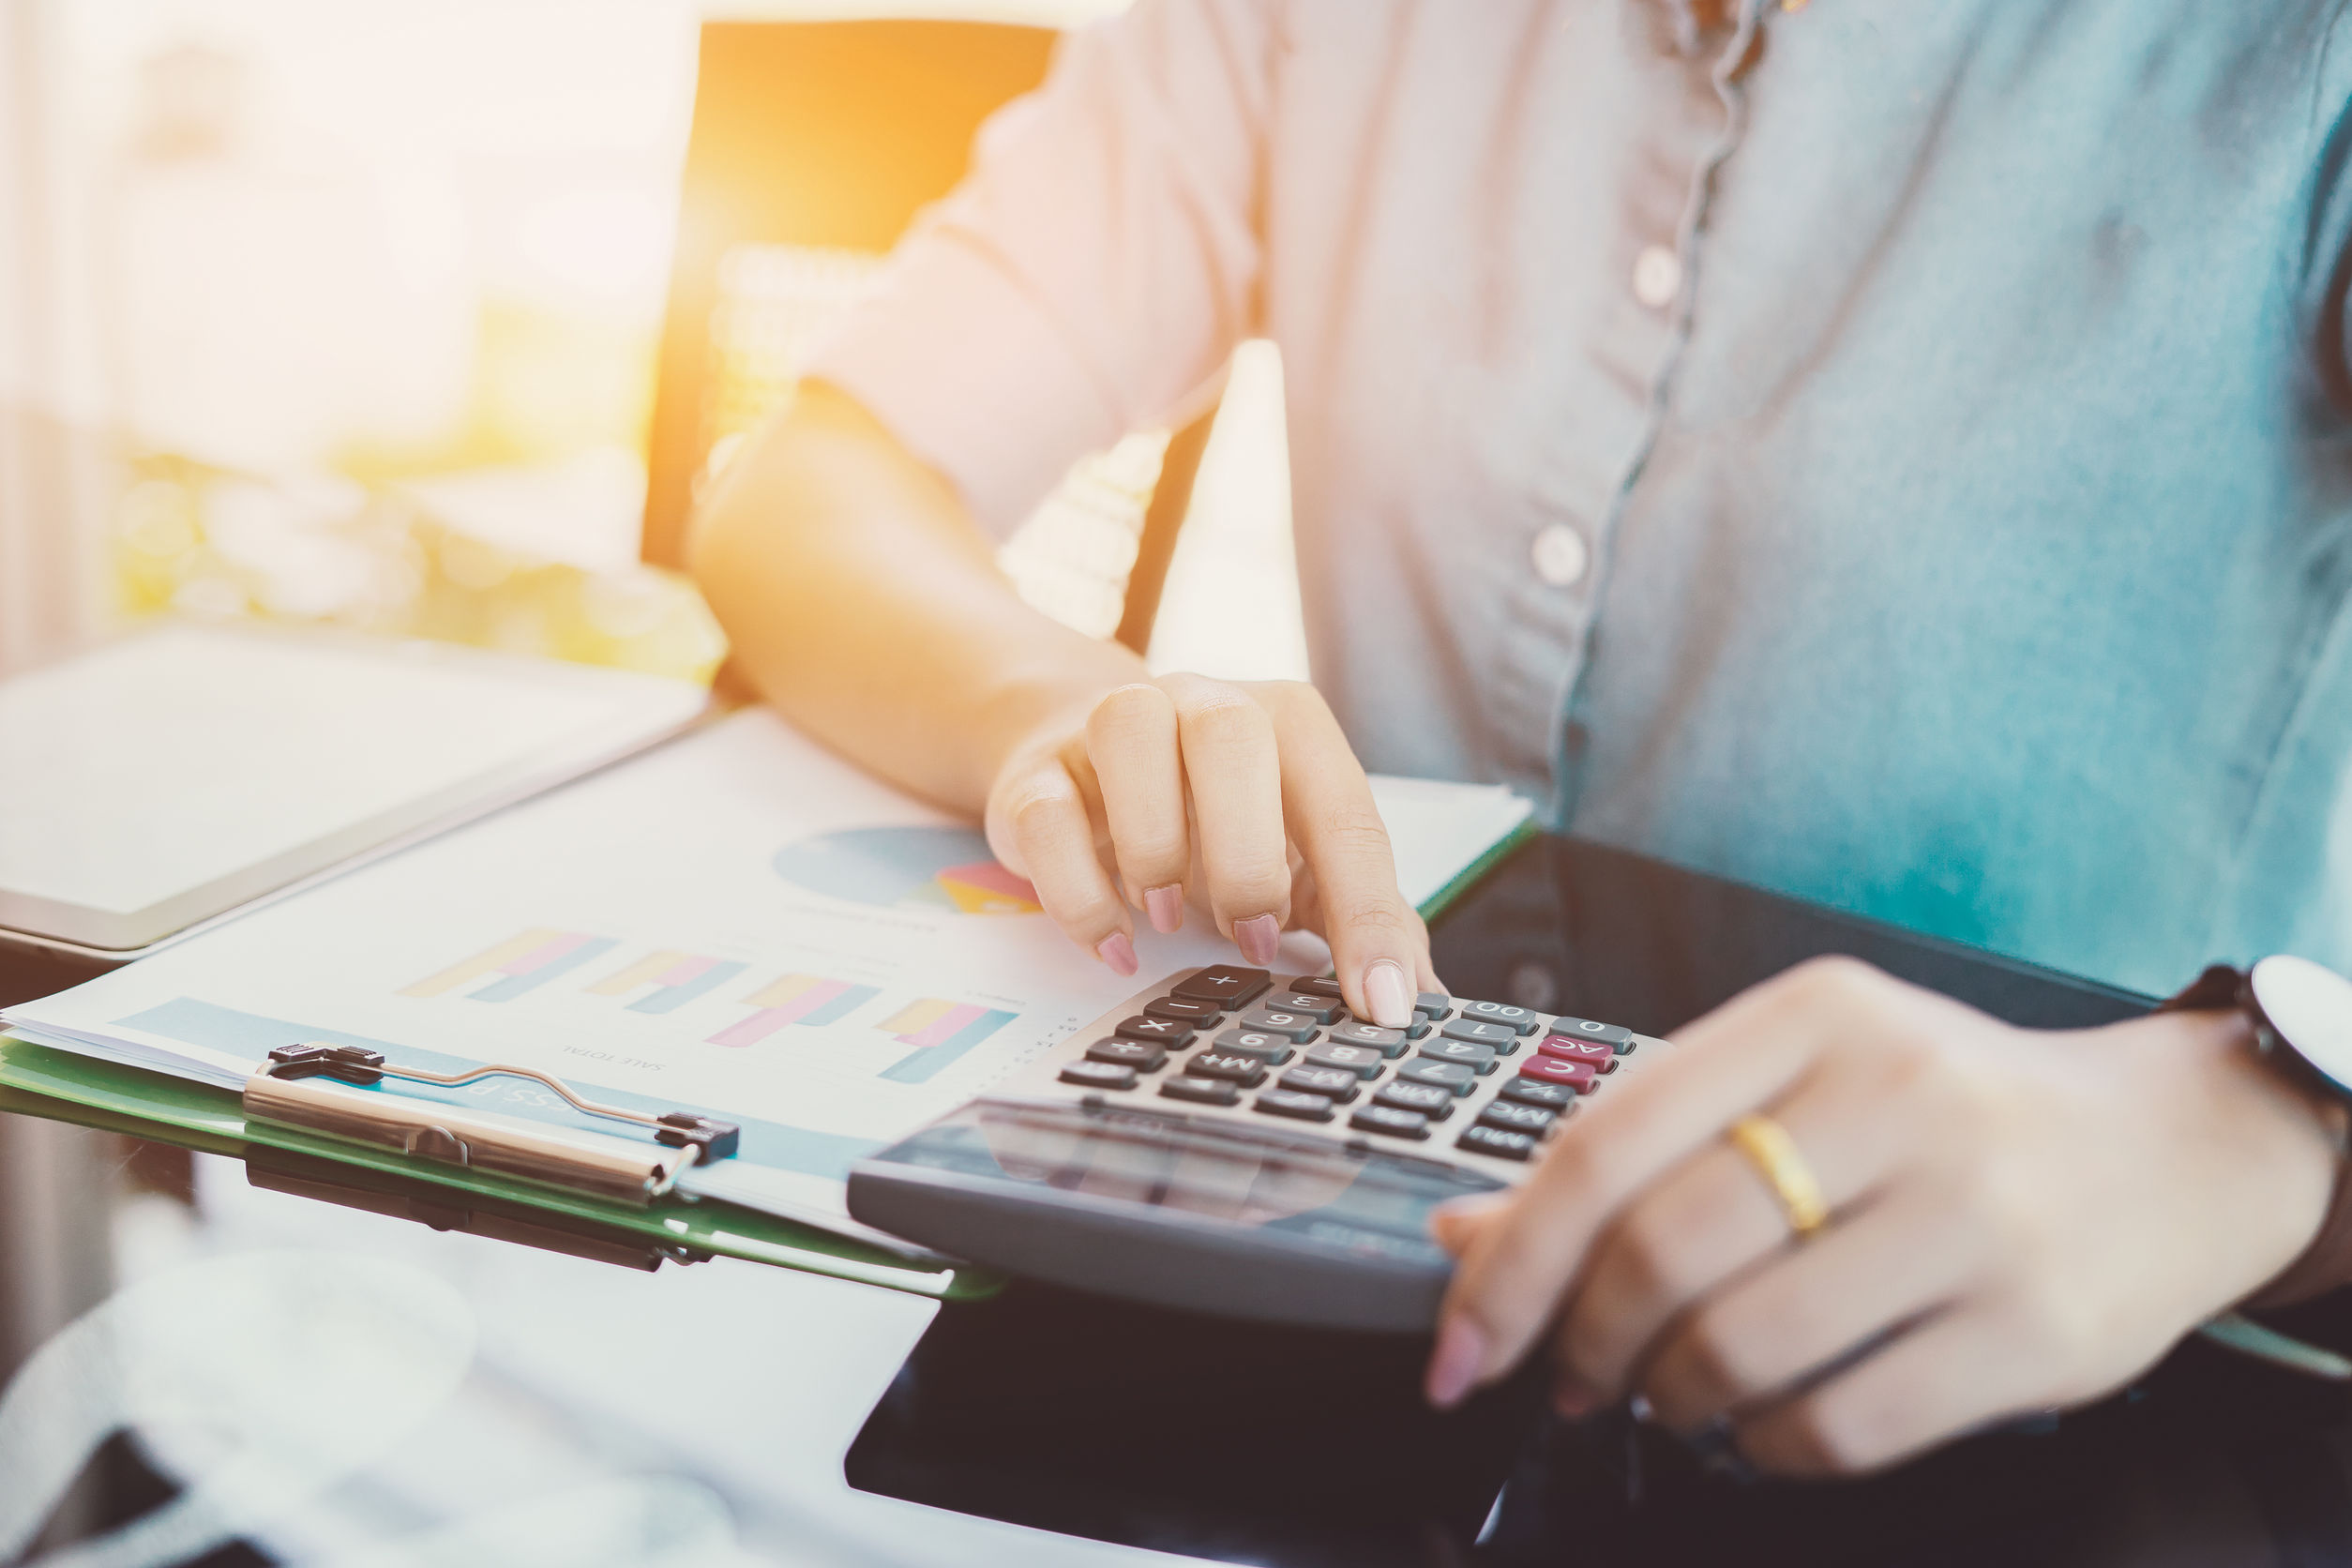 Food Truck Financing: What You Need to Know about Equipment Loans